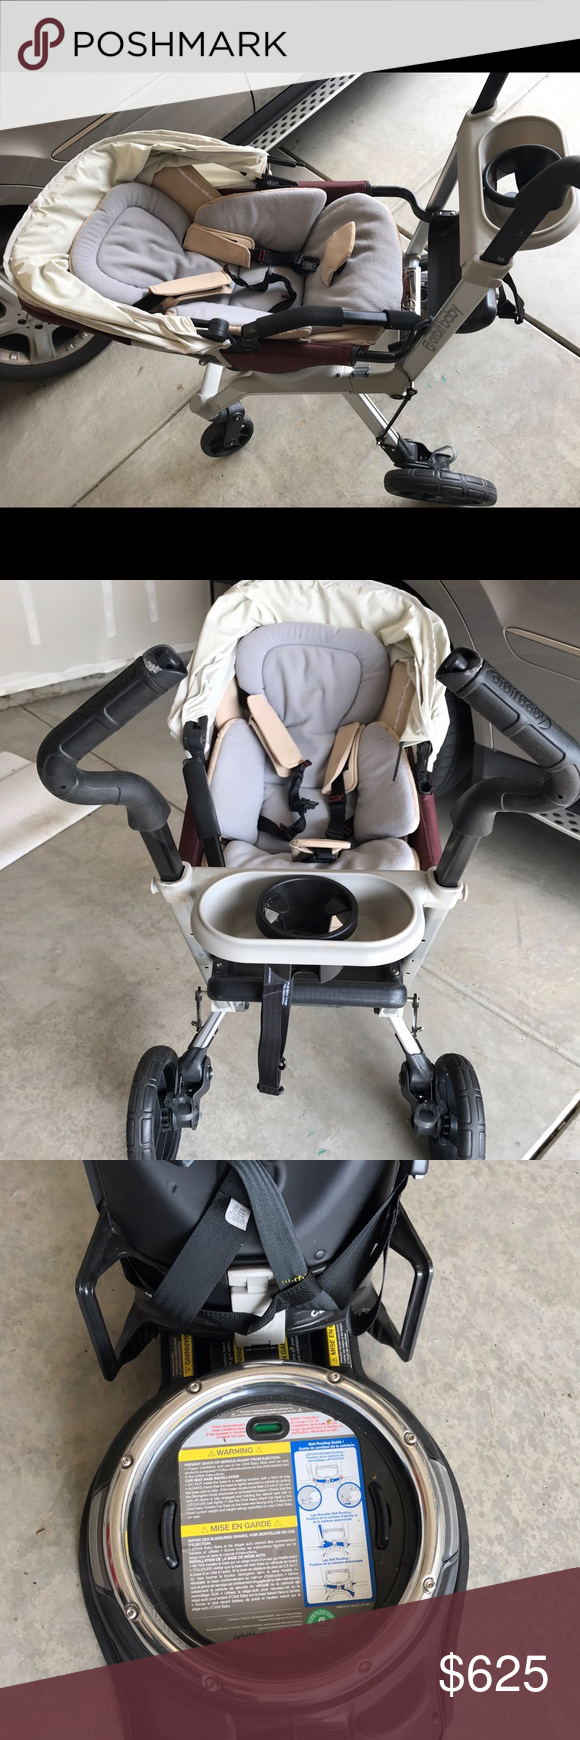 Orbit G2 Stroller travel system with car seat Used but in